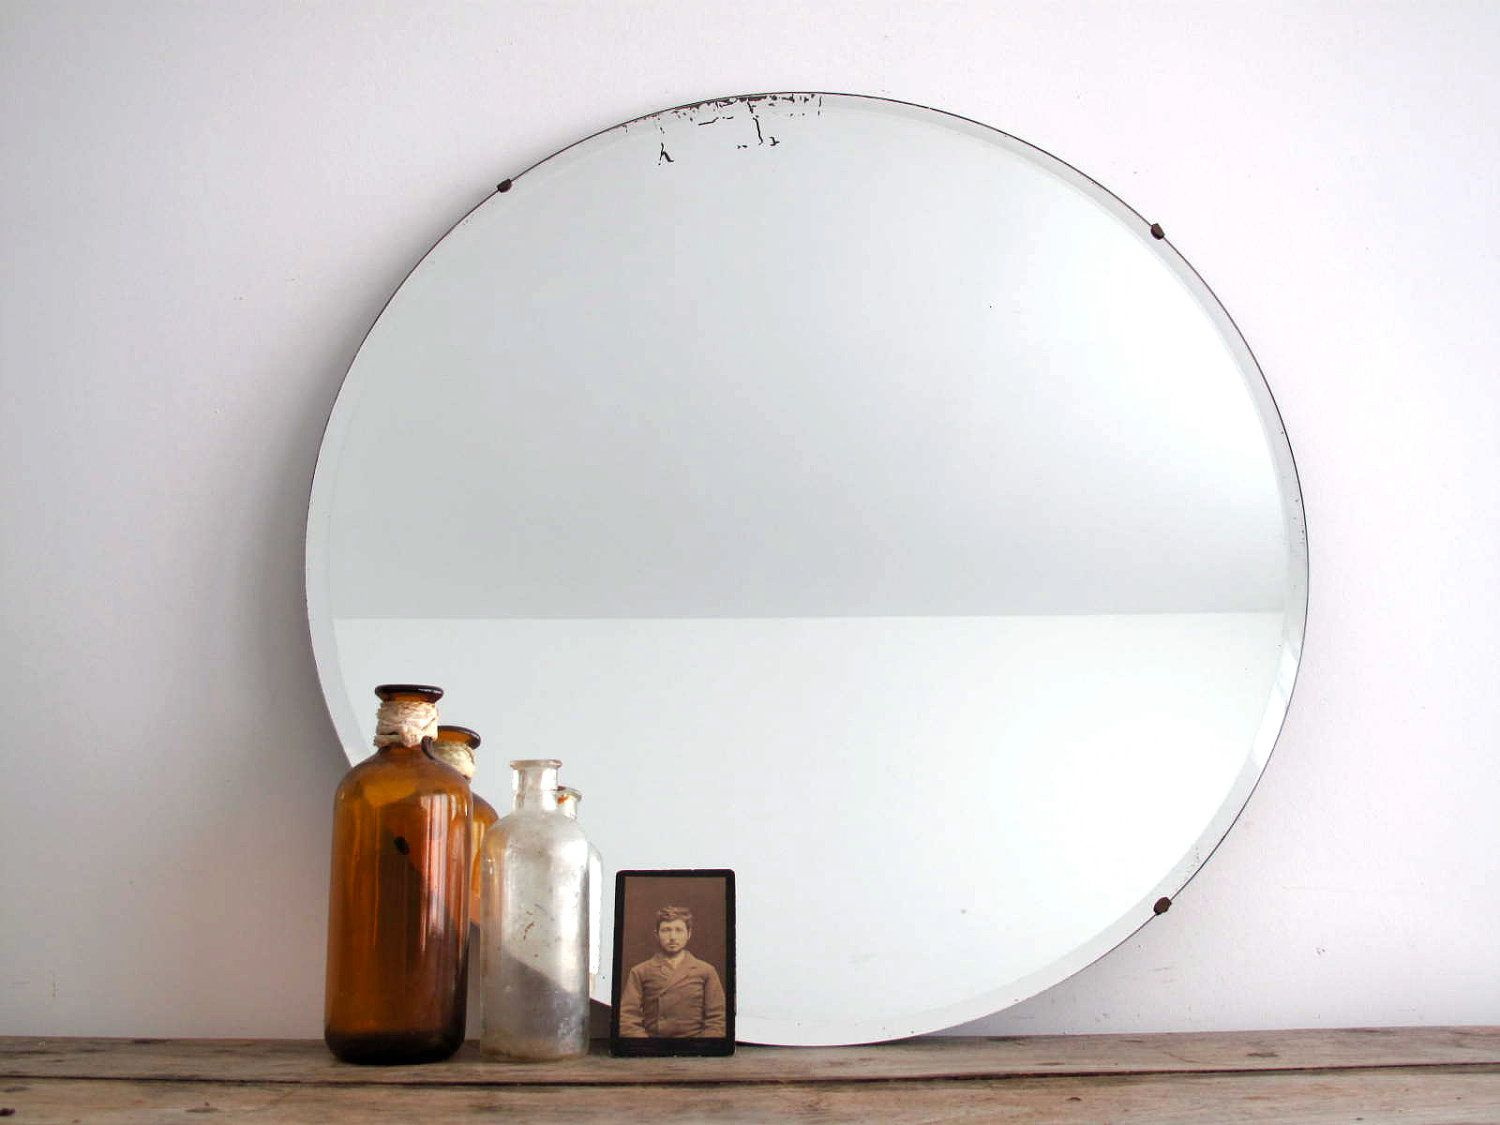 Bathroom Mirrors Frameless Beveled vintage round wall mirror - frameless beveled bathroom mirror